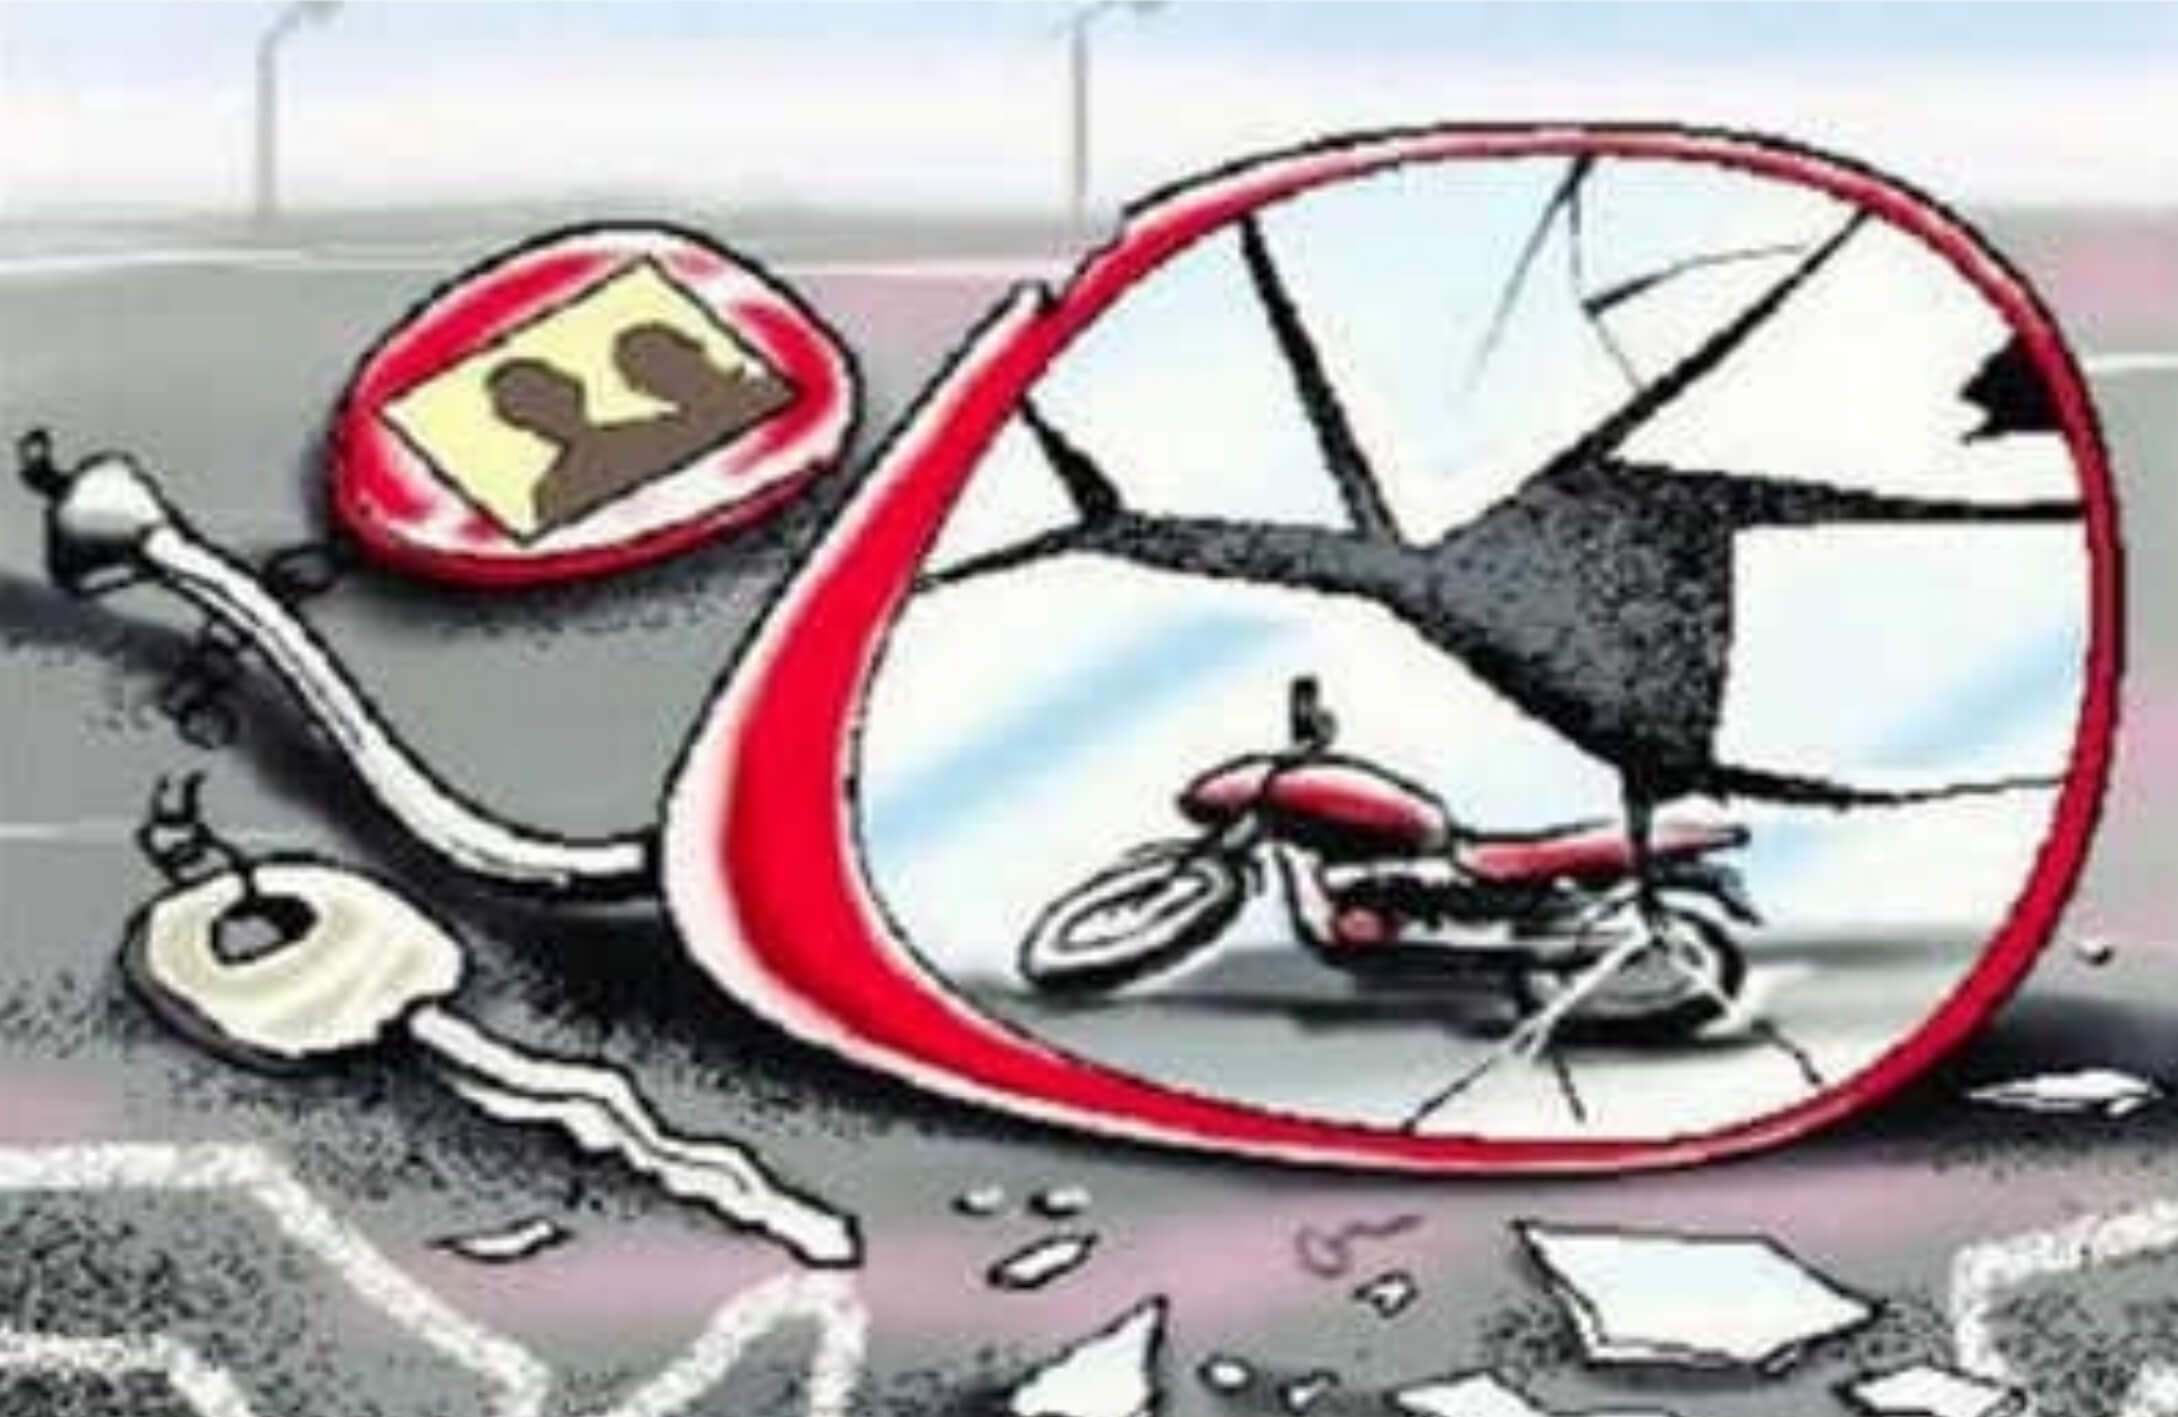 Road mishap claims lives of two students